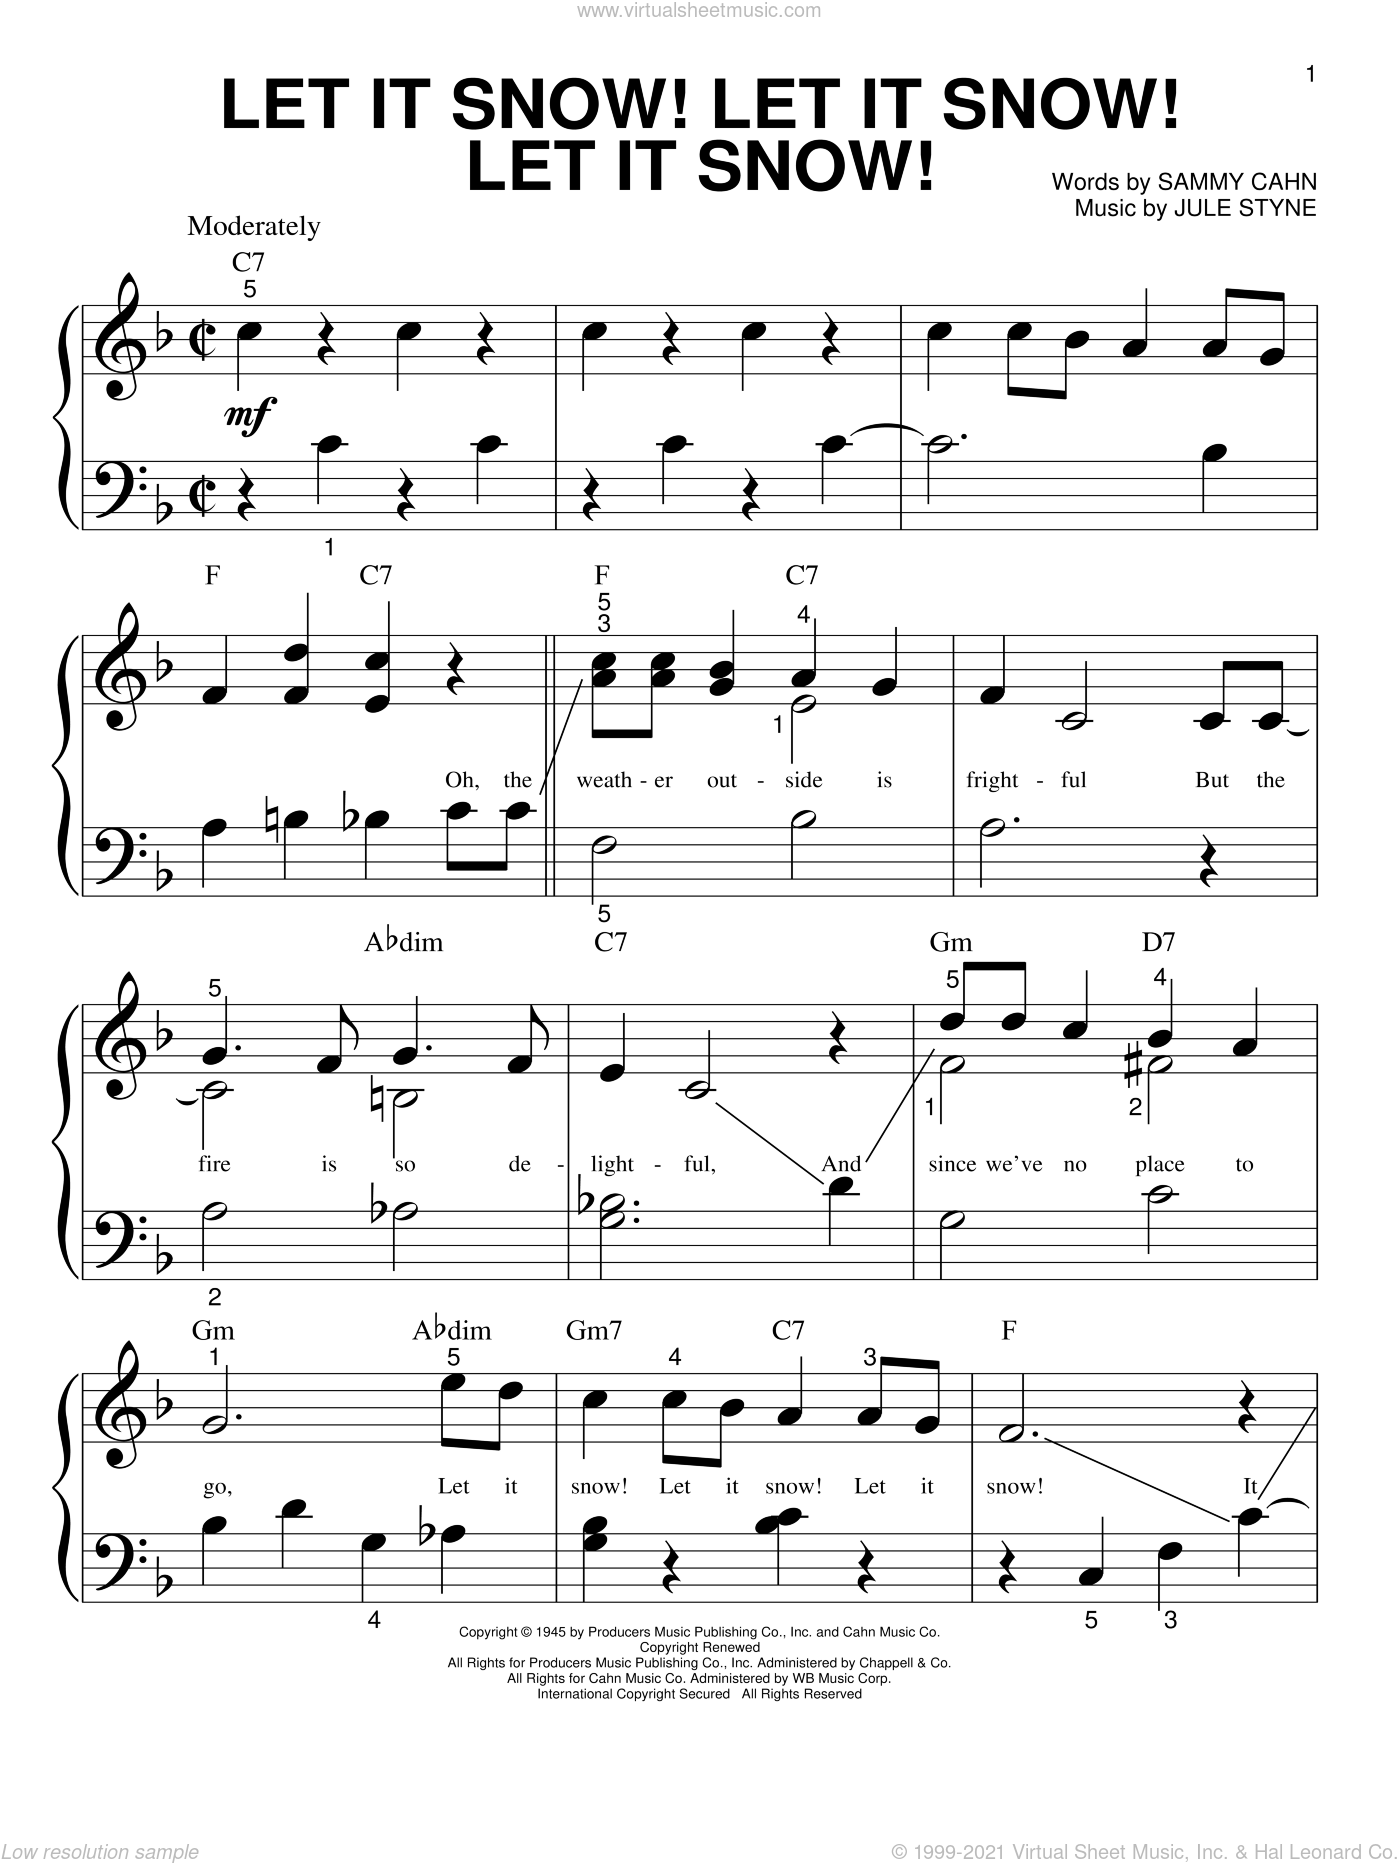 Let it snow let it snow let it snow sheet music for let it snow